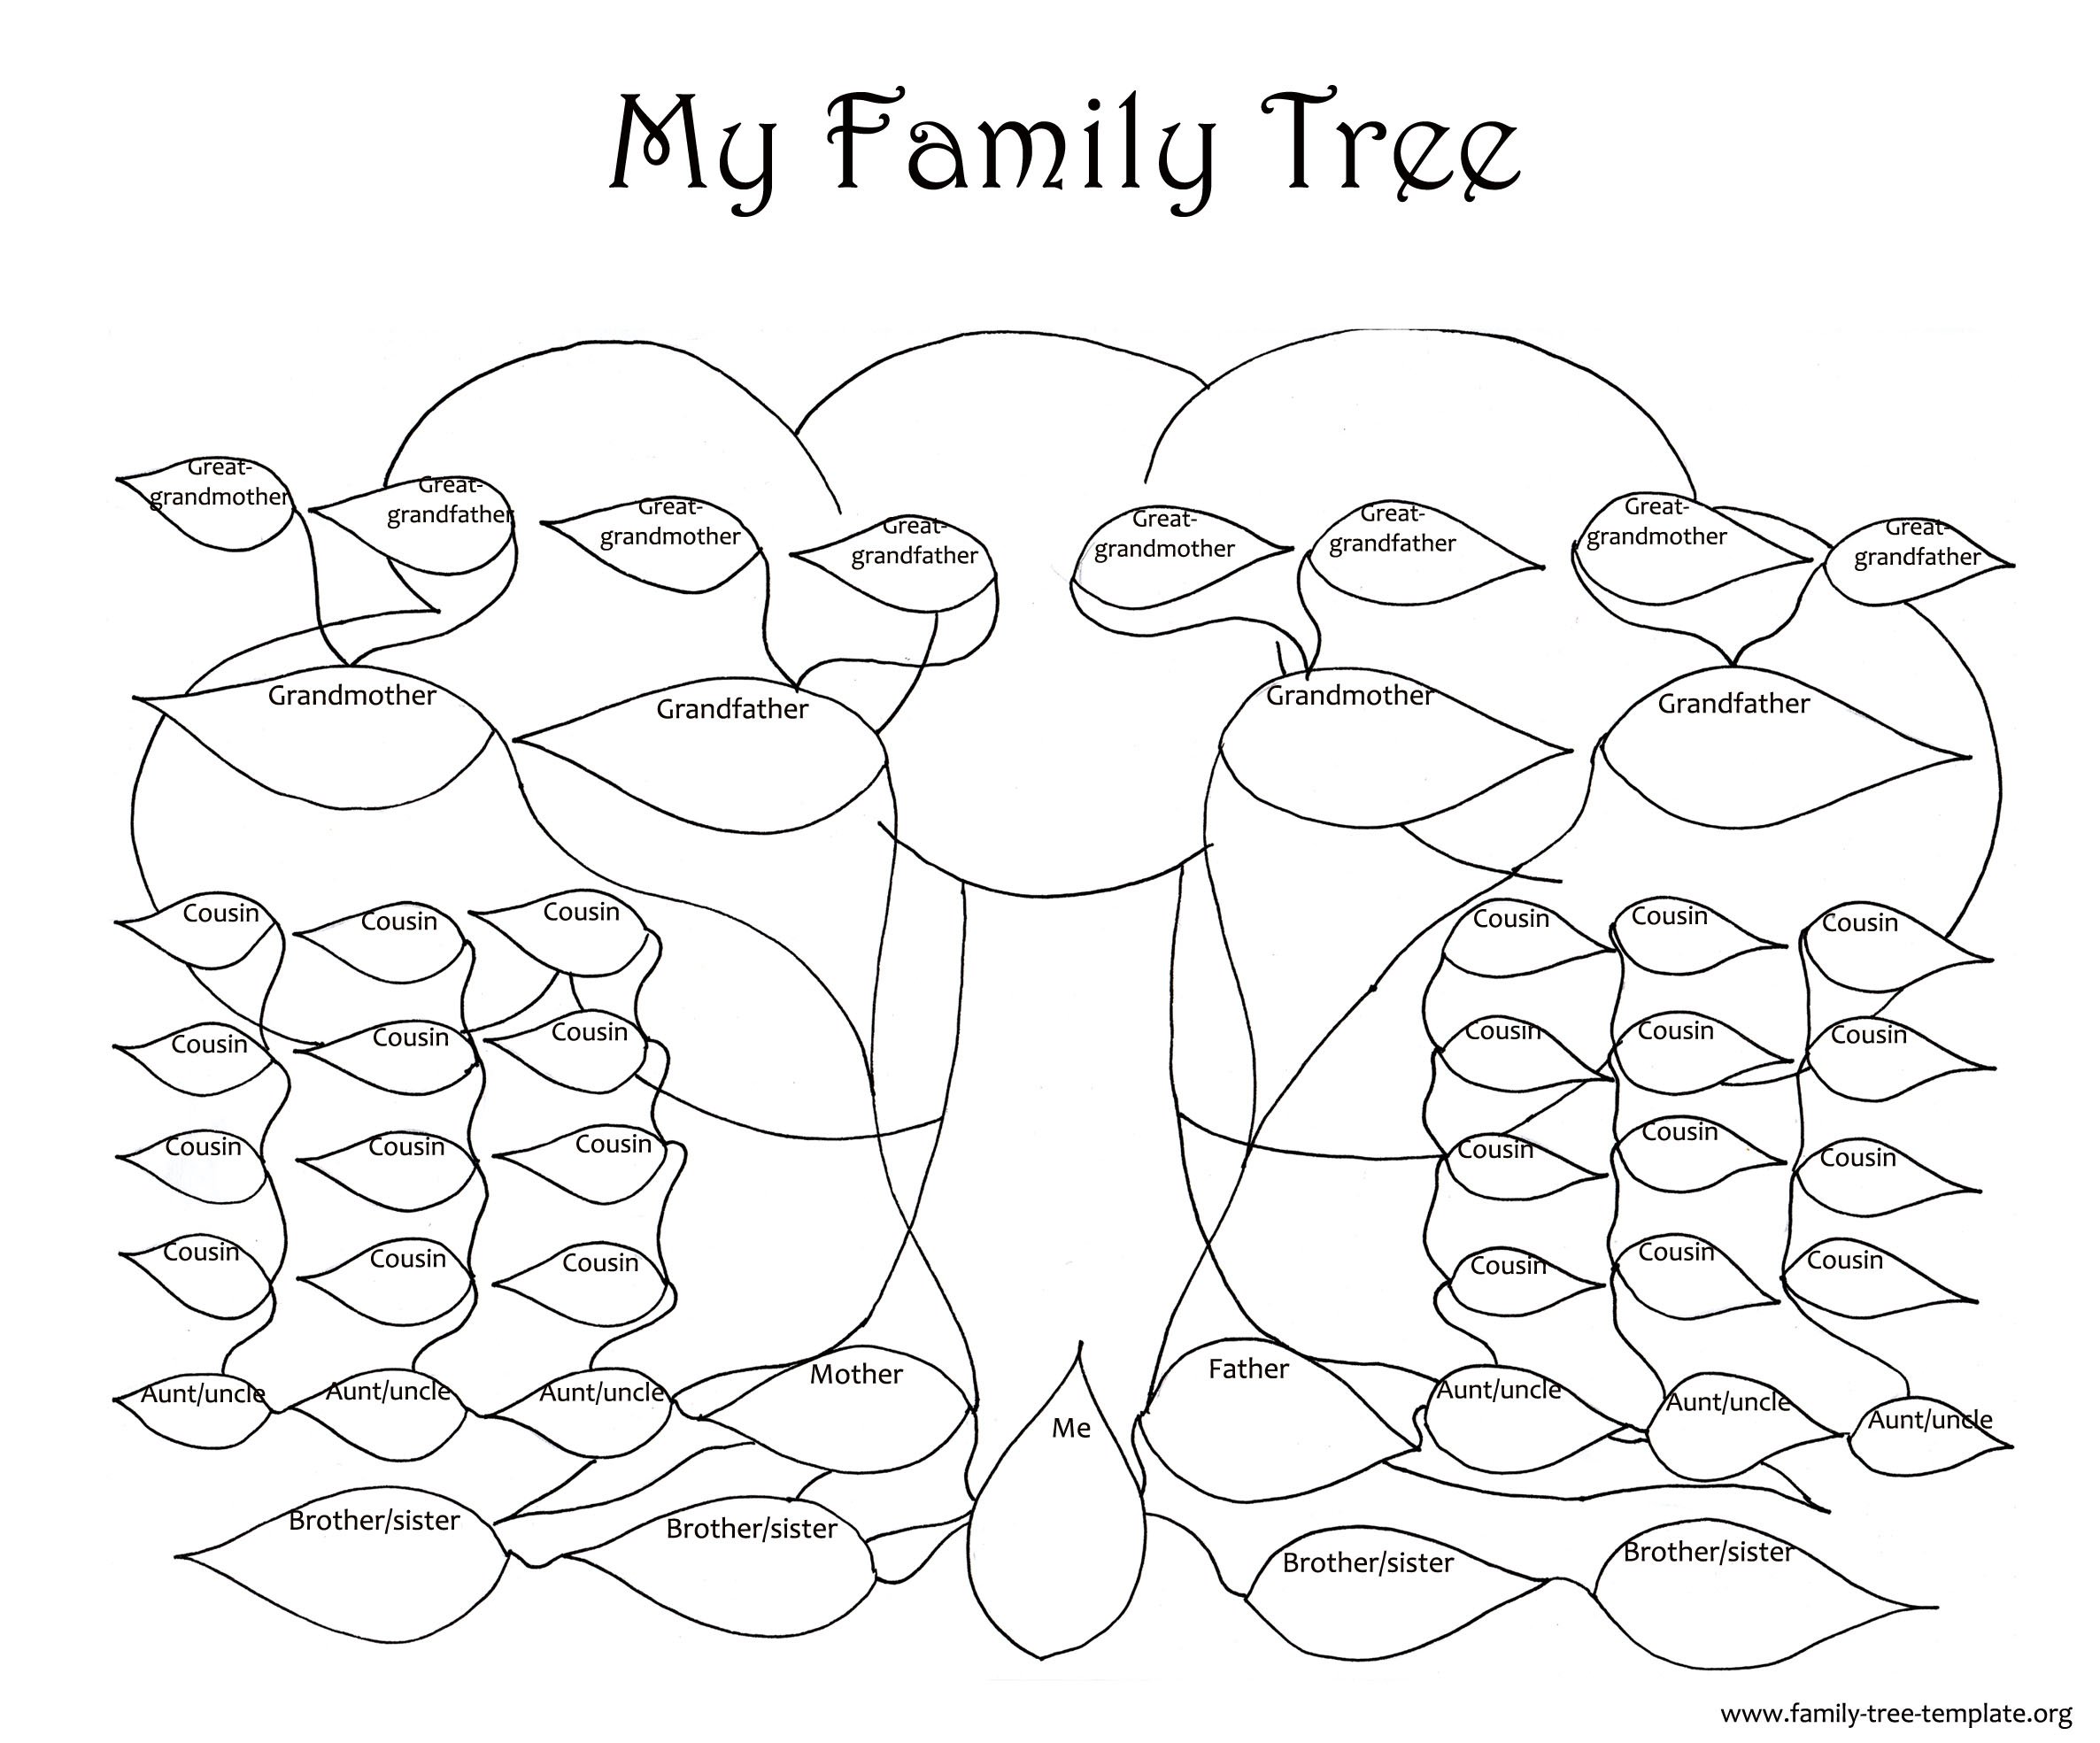 Family tree template for kids to fill out and color